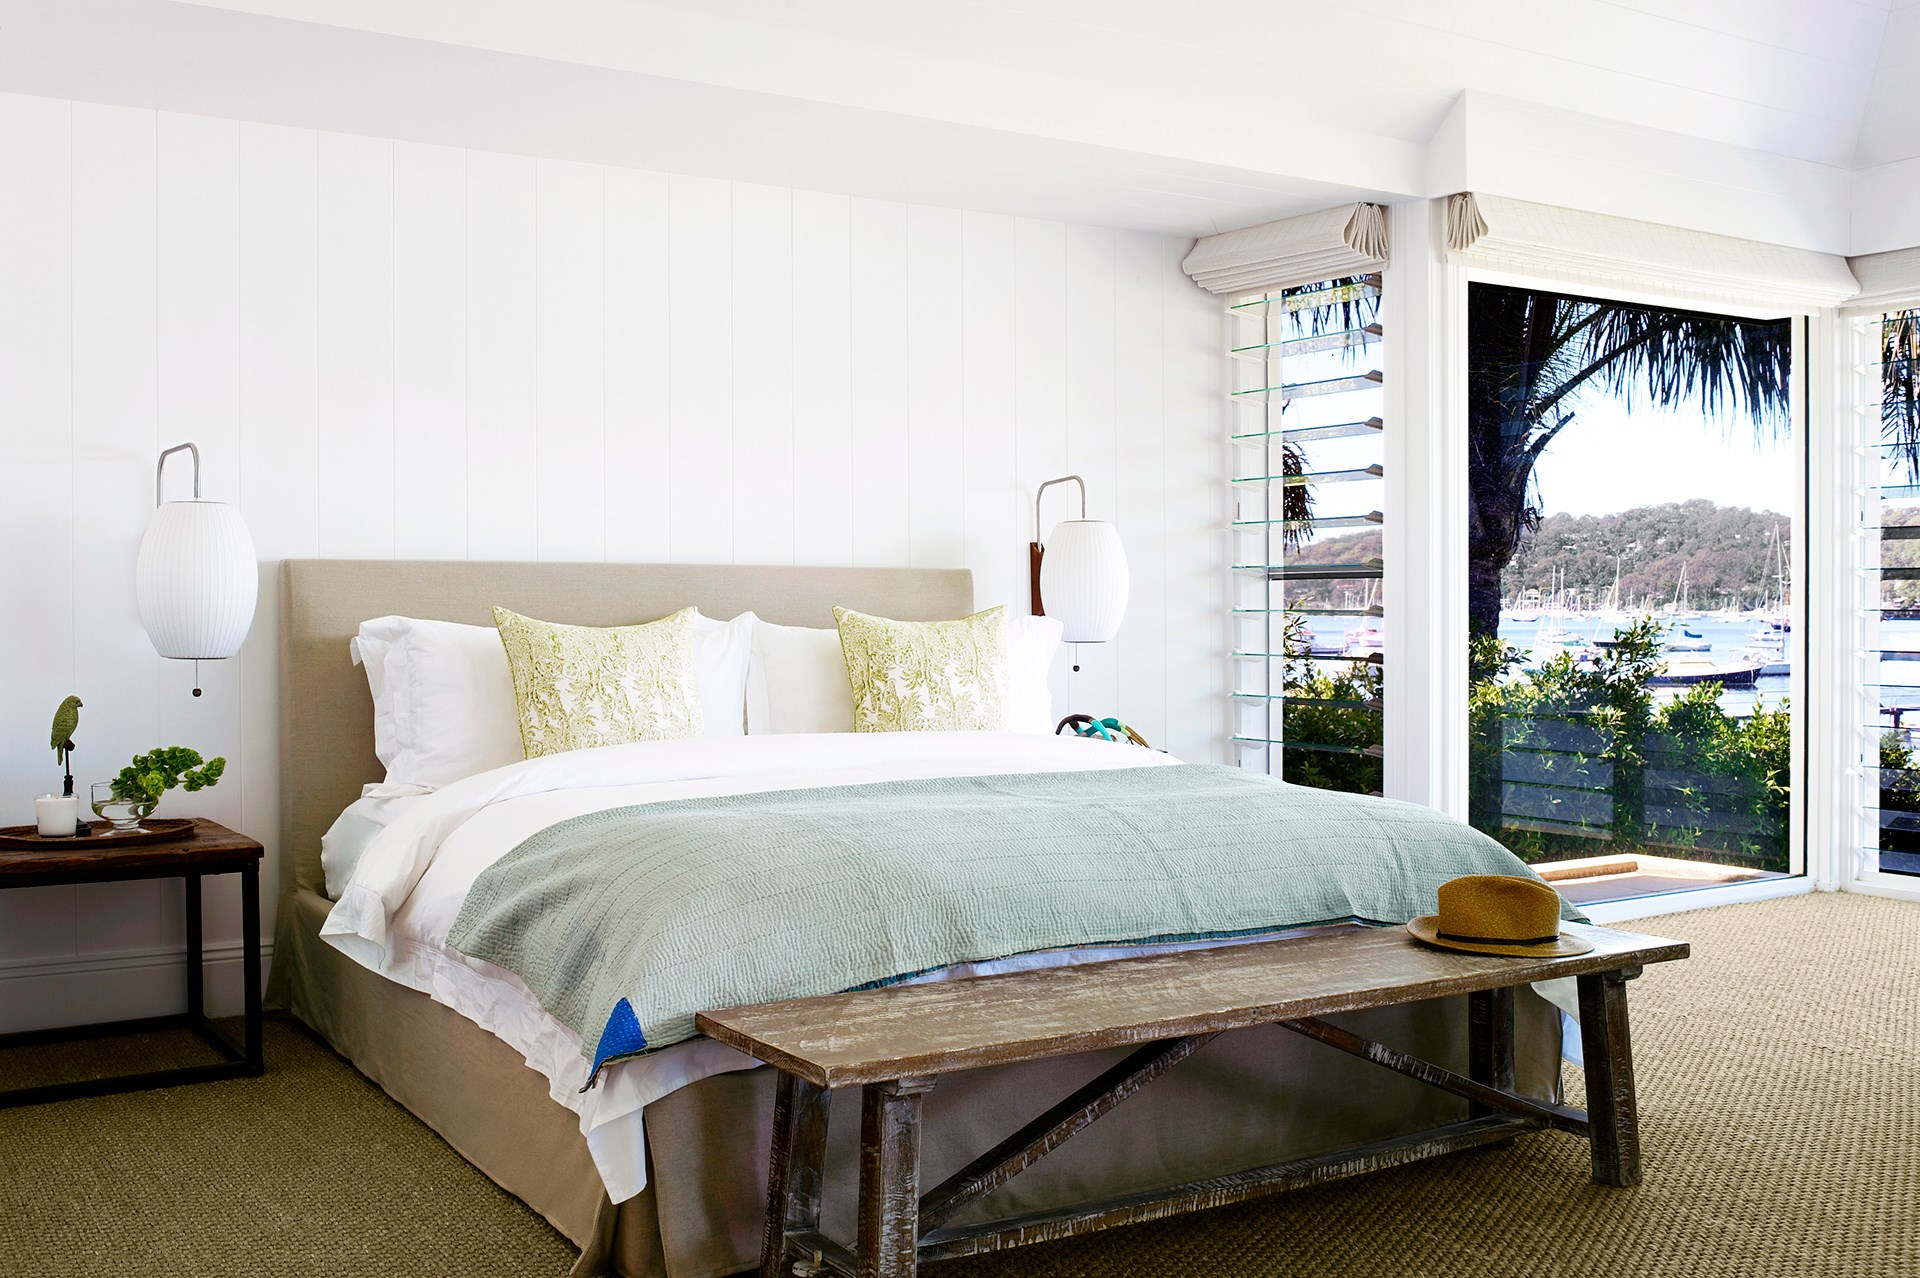 Sisal carpet and lining panels painted crisp white complement the fresh, coastal style of this [Palm Beach house](http://www.homestolove.com.au/a-luxury-coastal-home-on-sydneys-northern-beaches-1808). *Photo: Nicholas Watt*